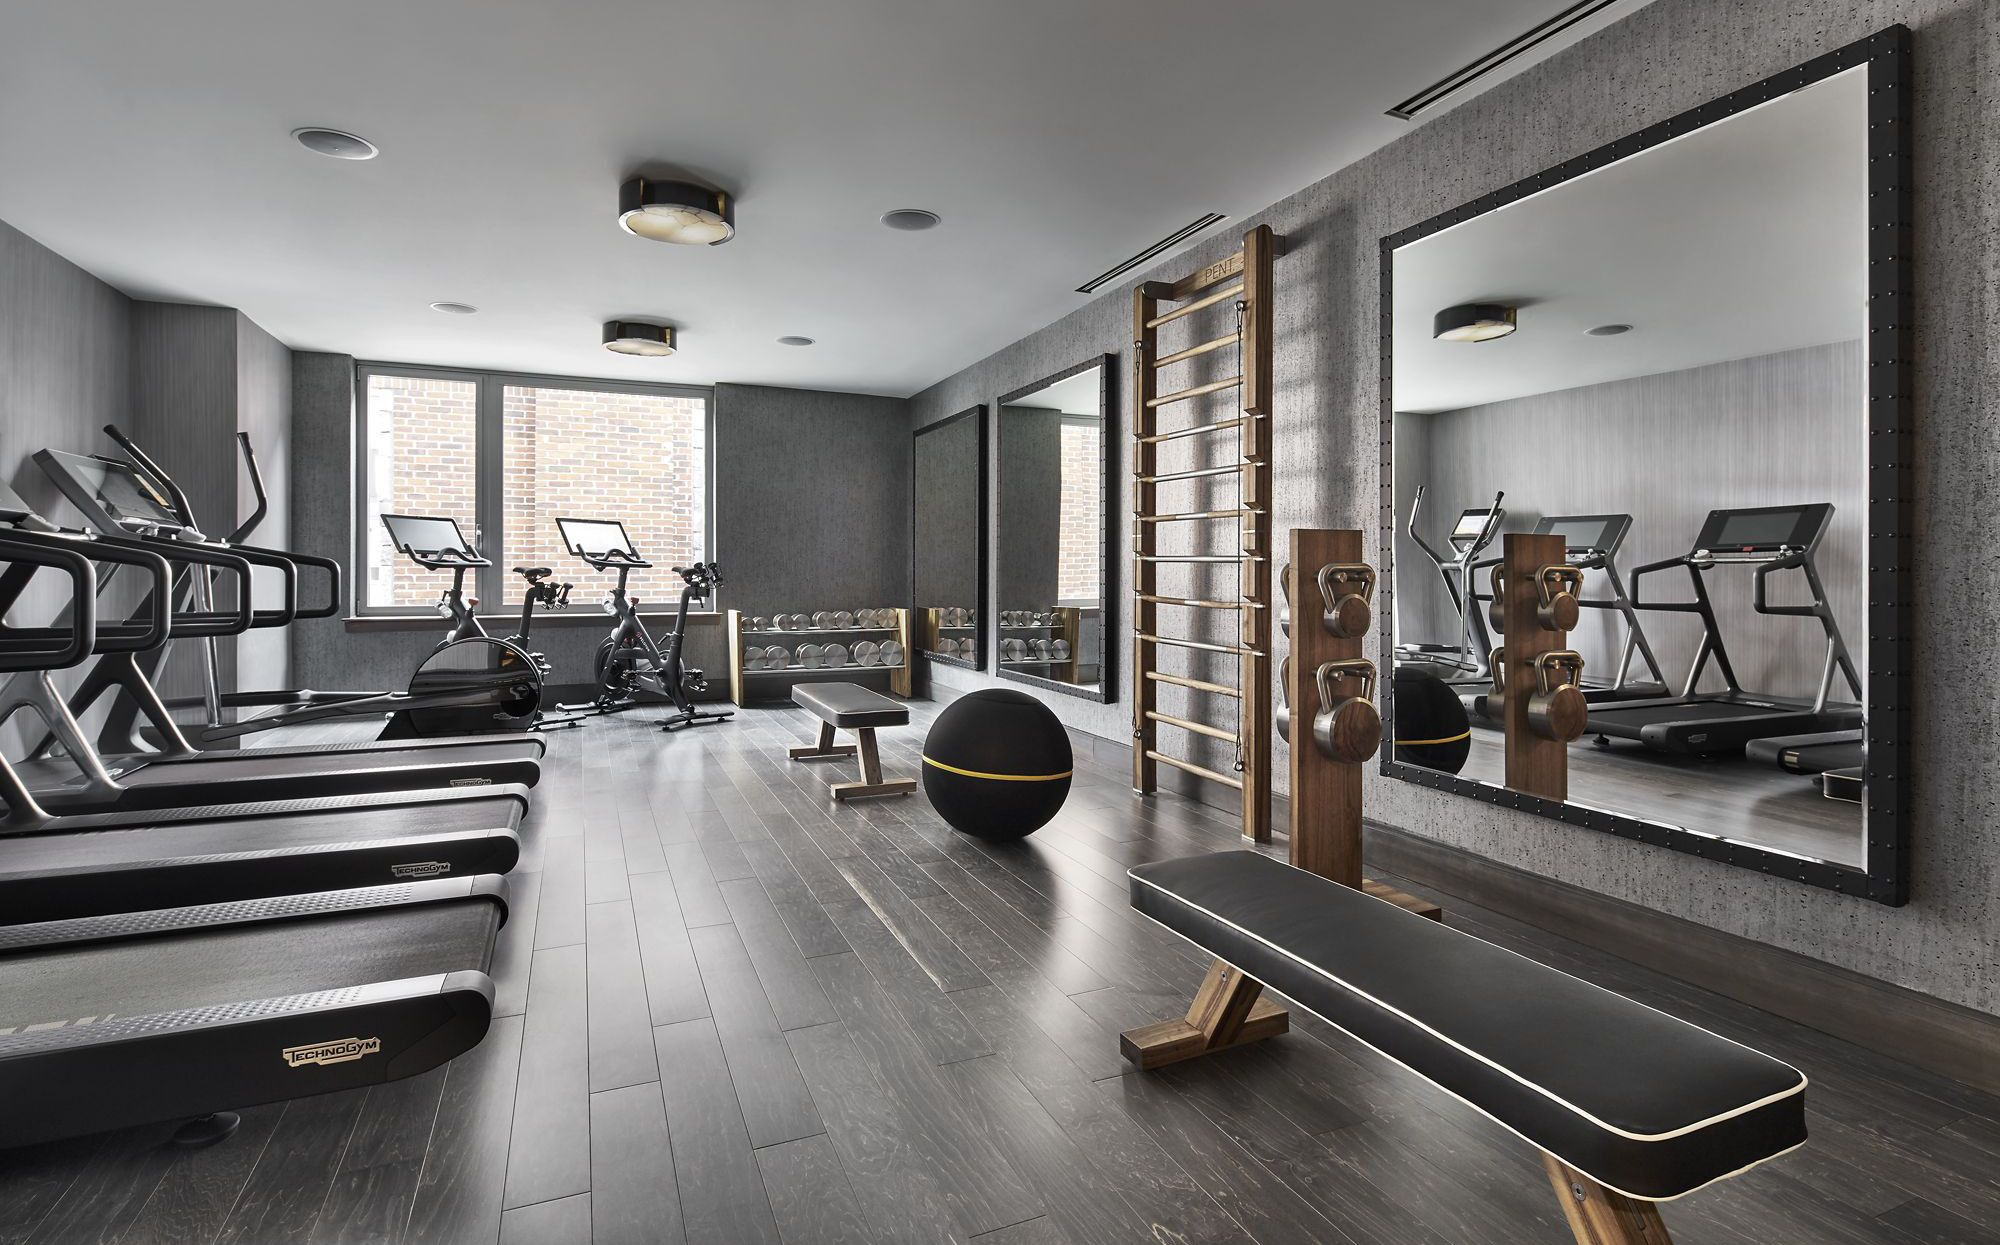 Studio La Rosa Palermo luxury fitness home gym equipment and for personal studio